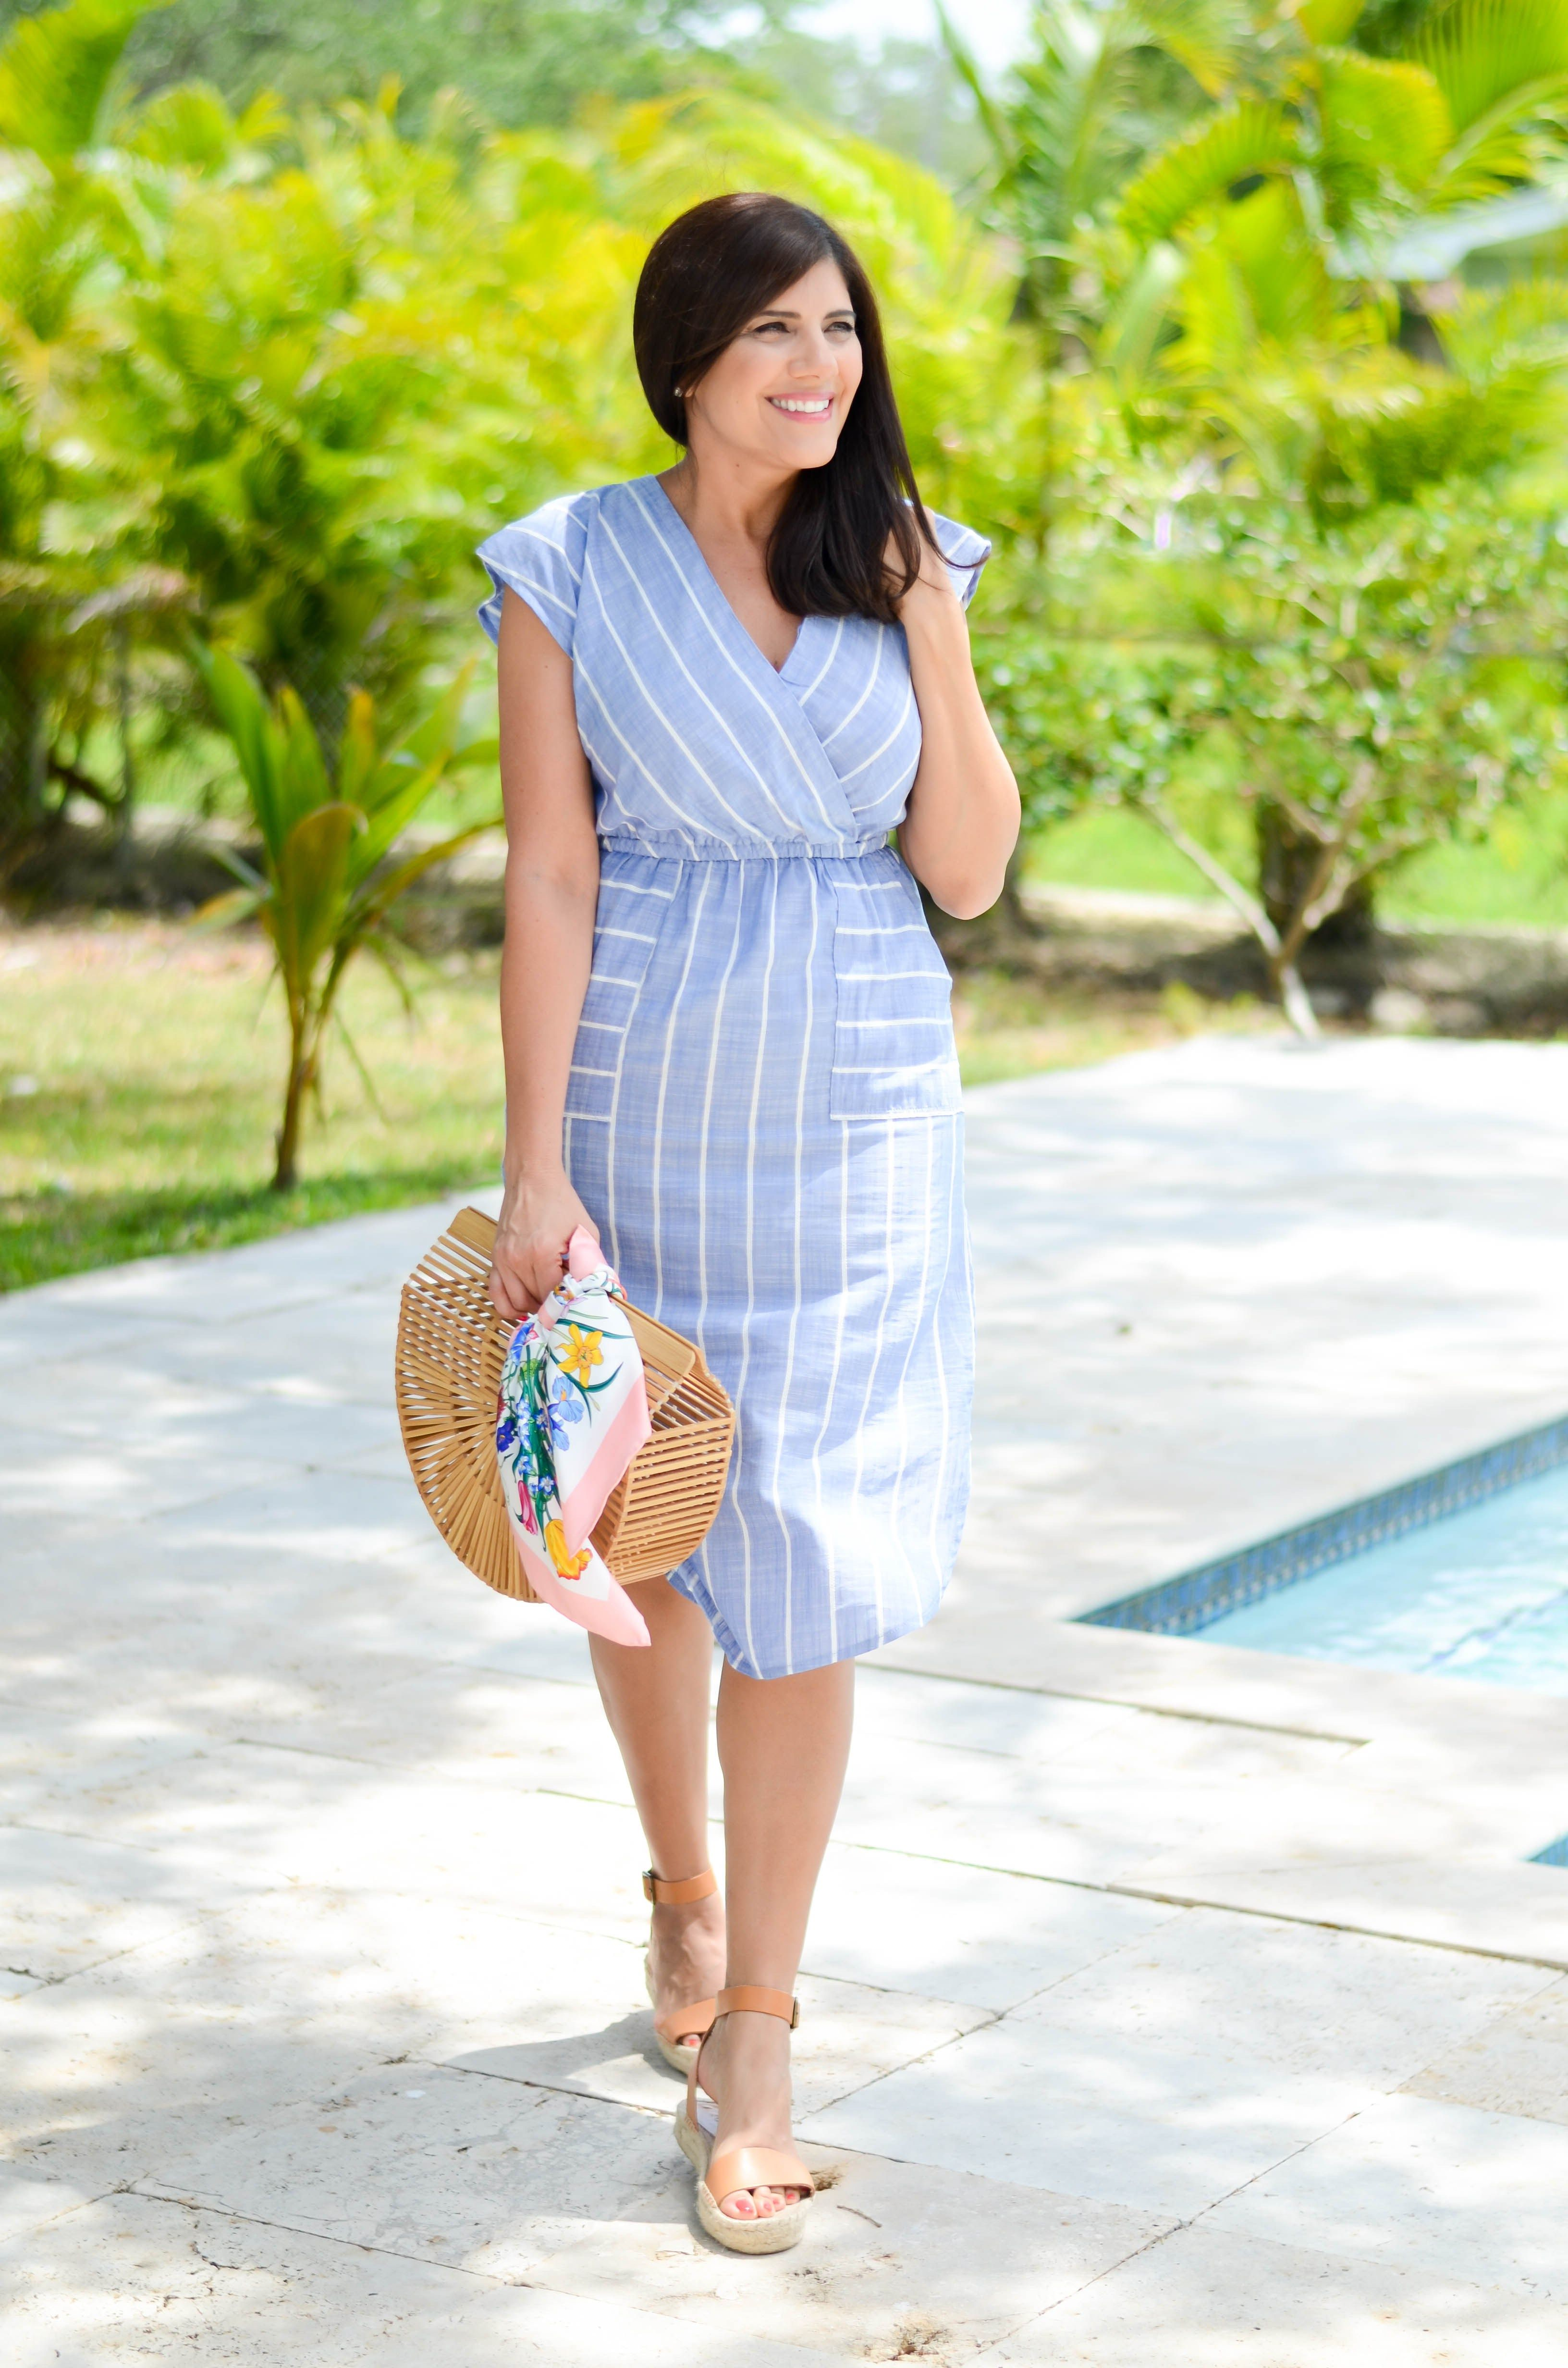 Blue And White Striped Dress For Spring Beautifully Seaside Blue Dress Outfits Summer Dress Outfits Blue Summer Dress Outfit [ 4928 x 3264 Pixel ]